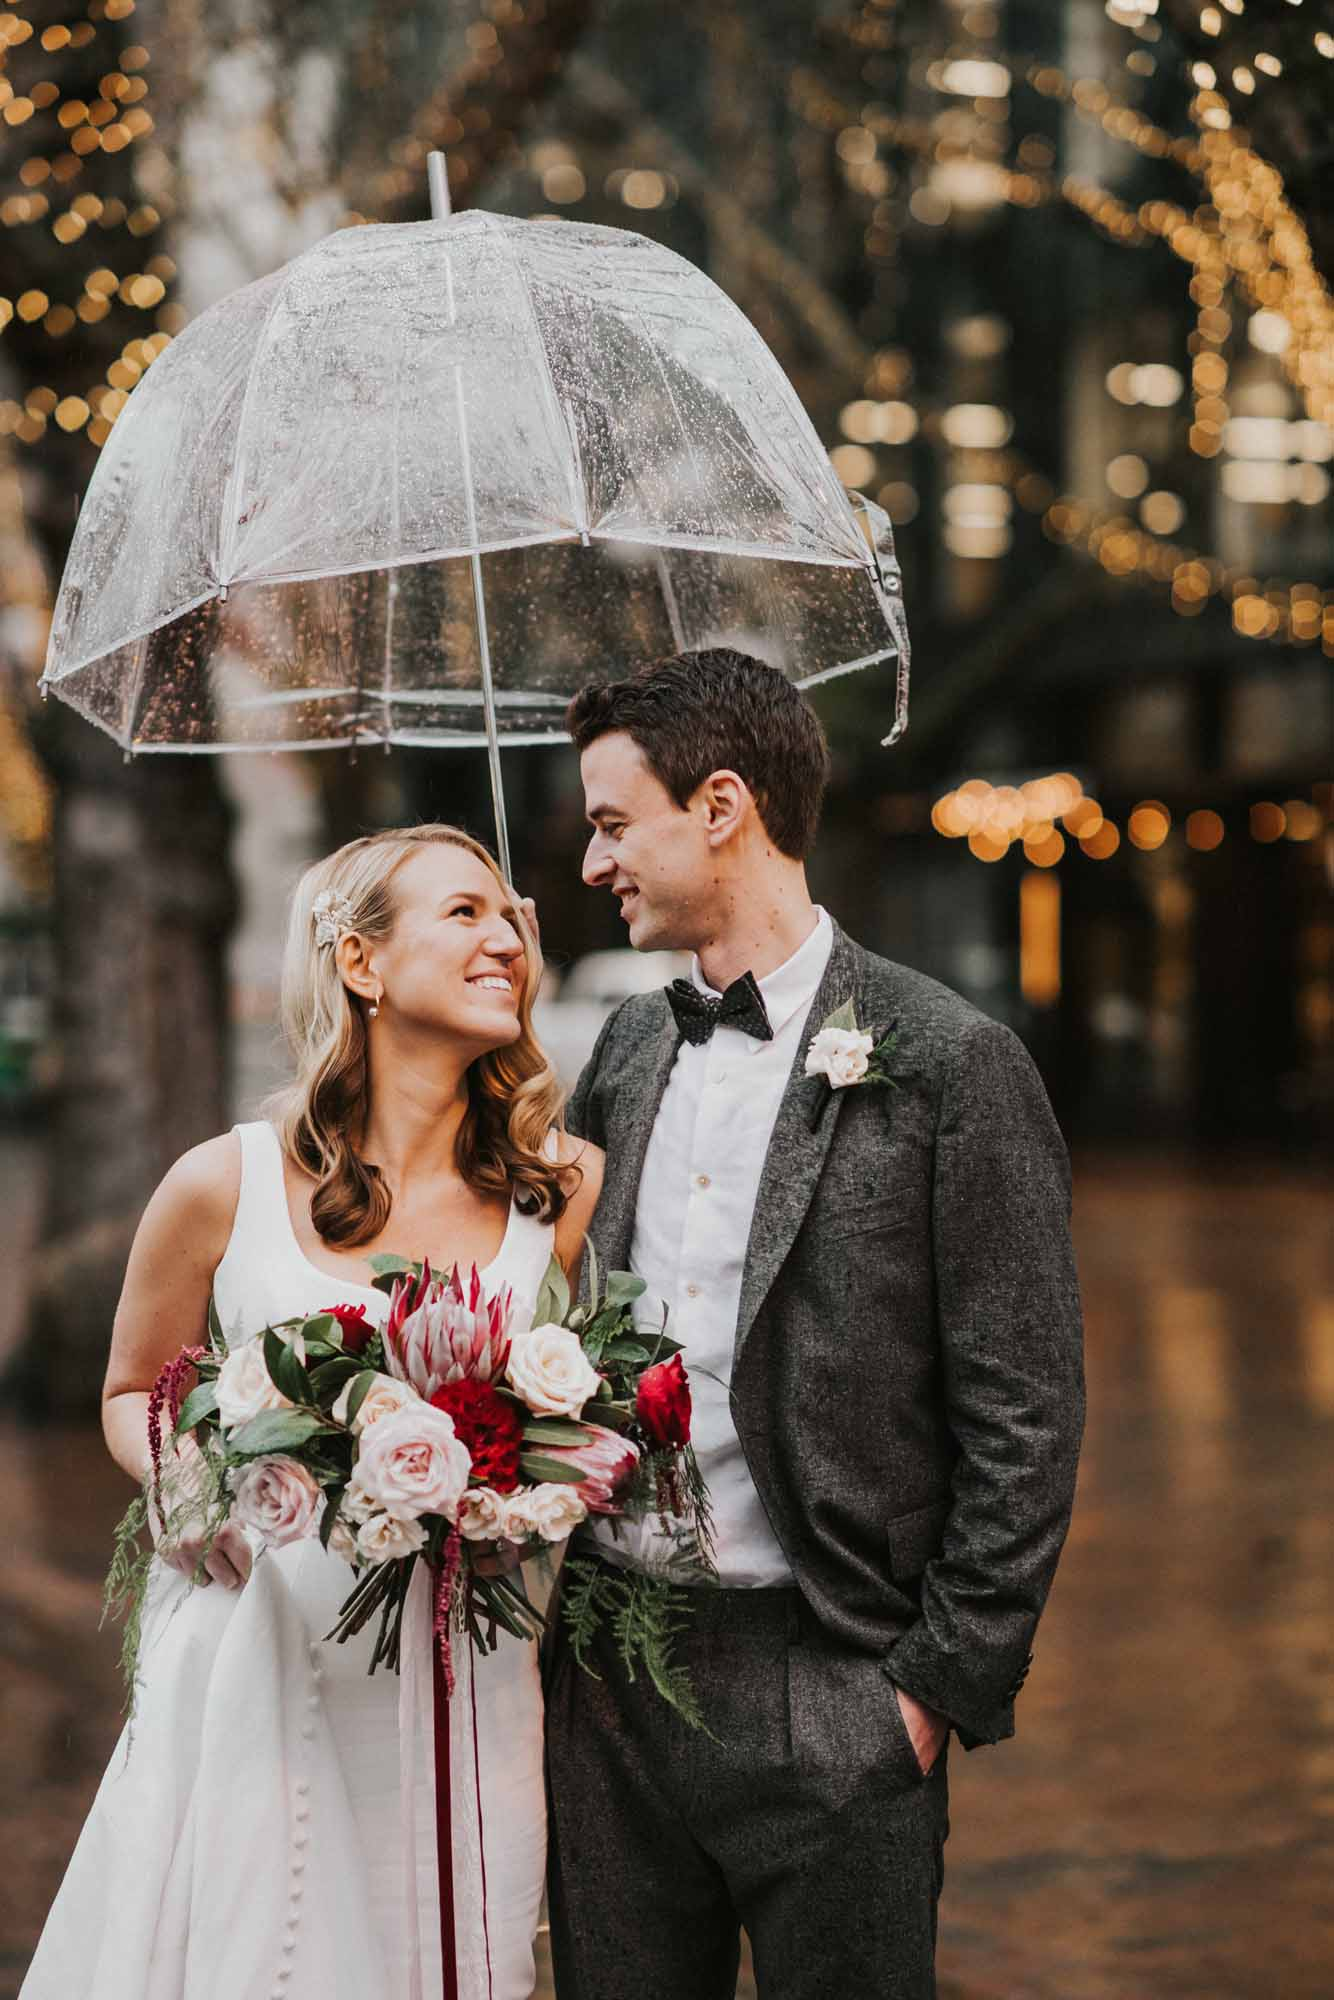 clear umbrella over bride and groom